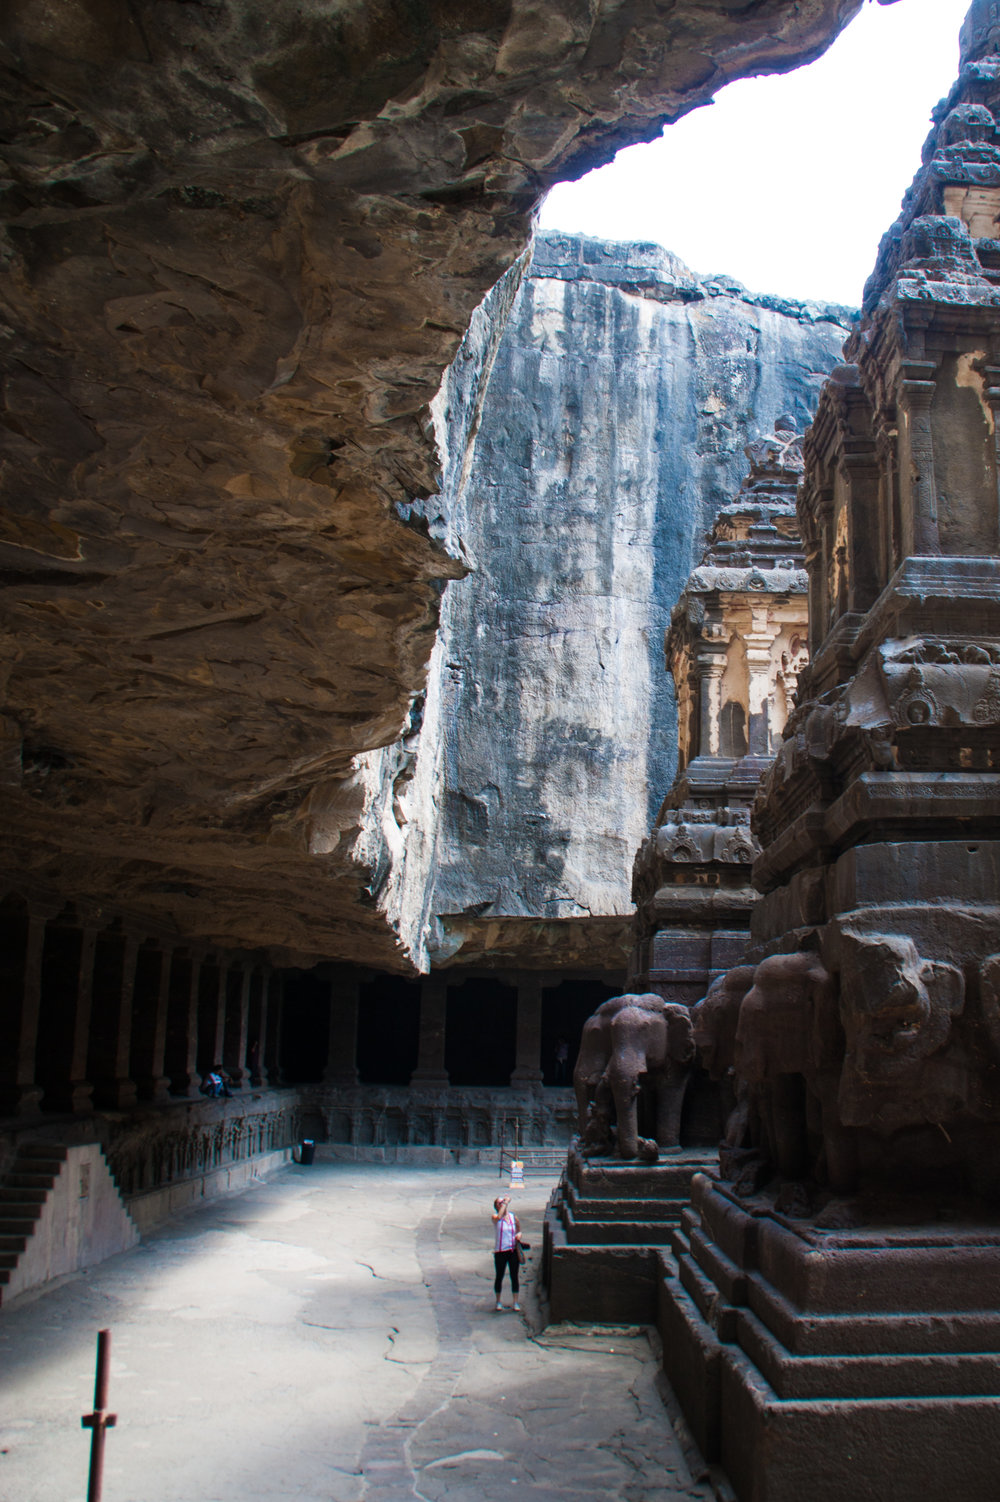 The Ellora Caves in Aurangabad, Maharashtra, India.